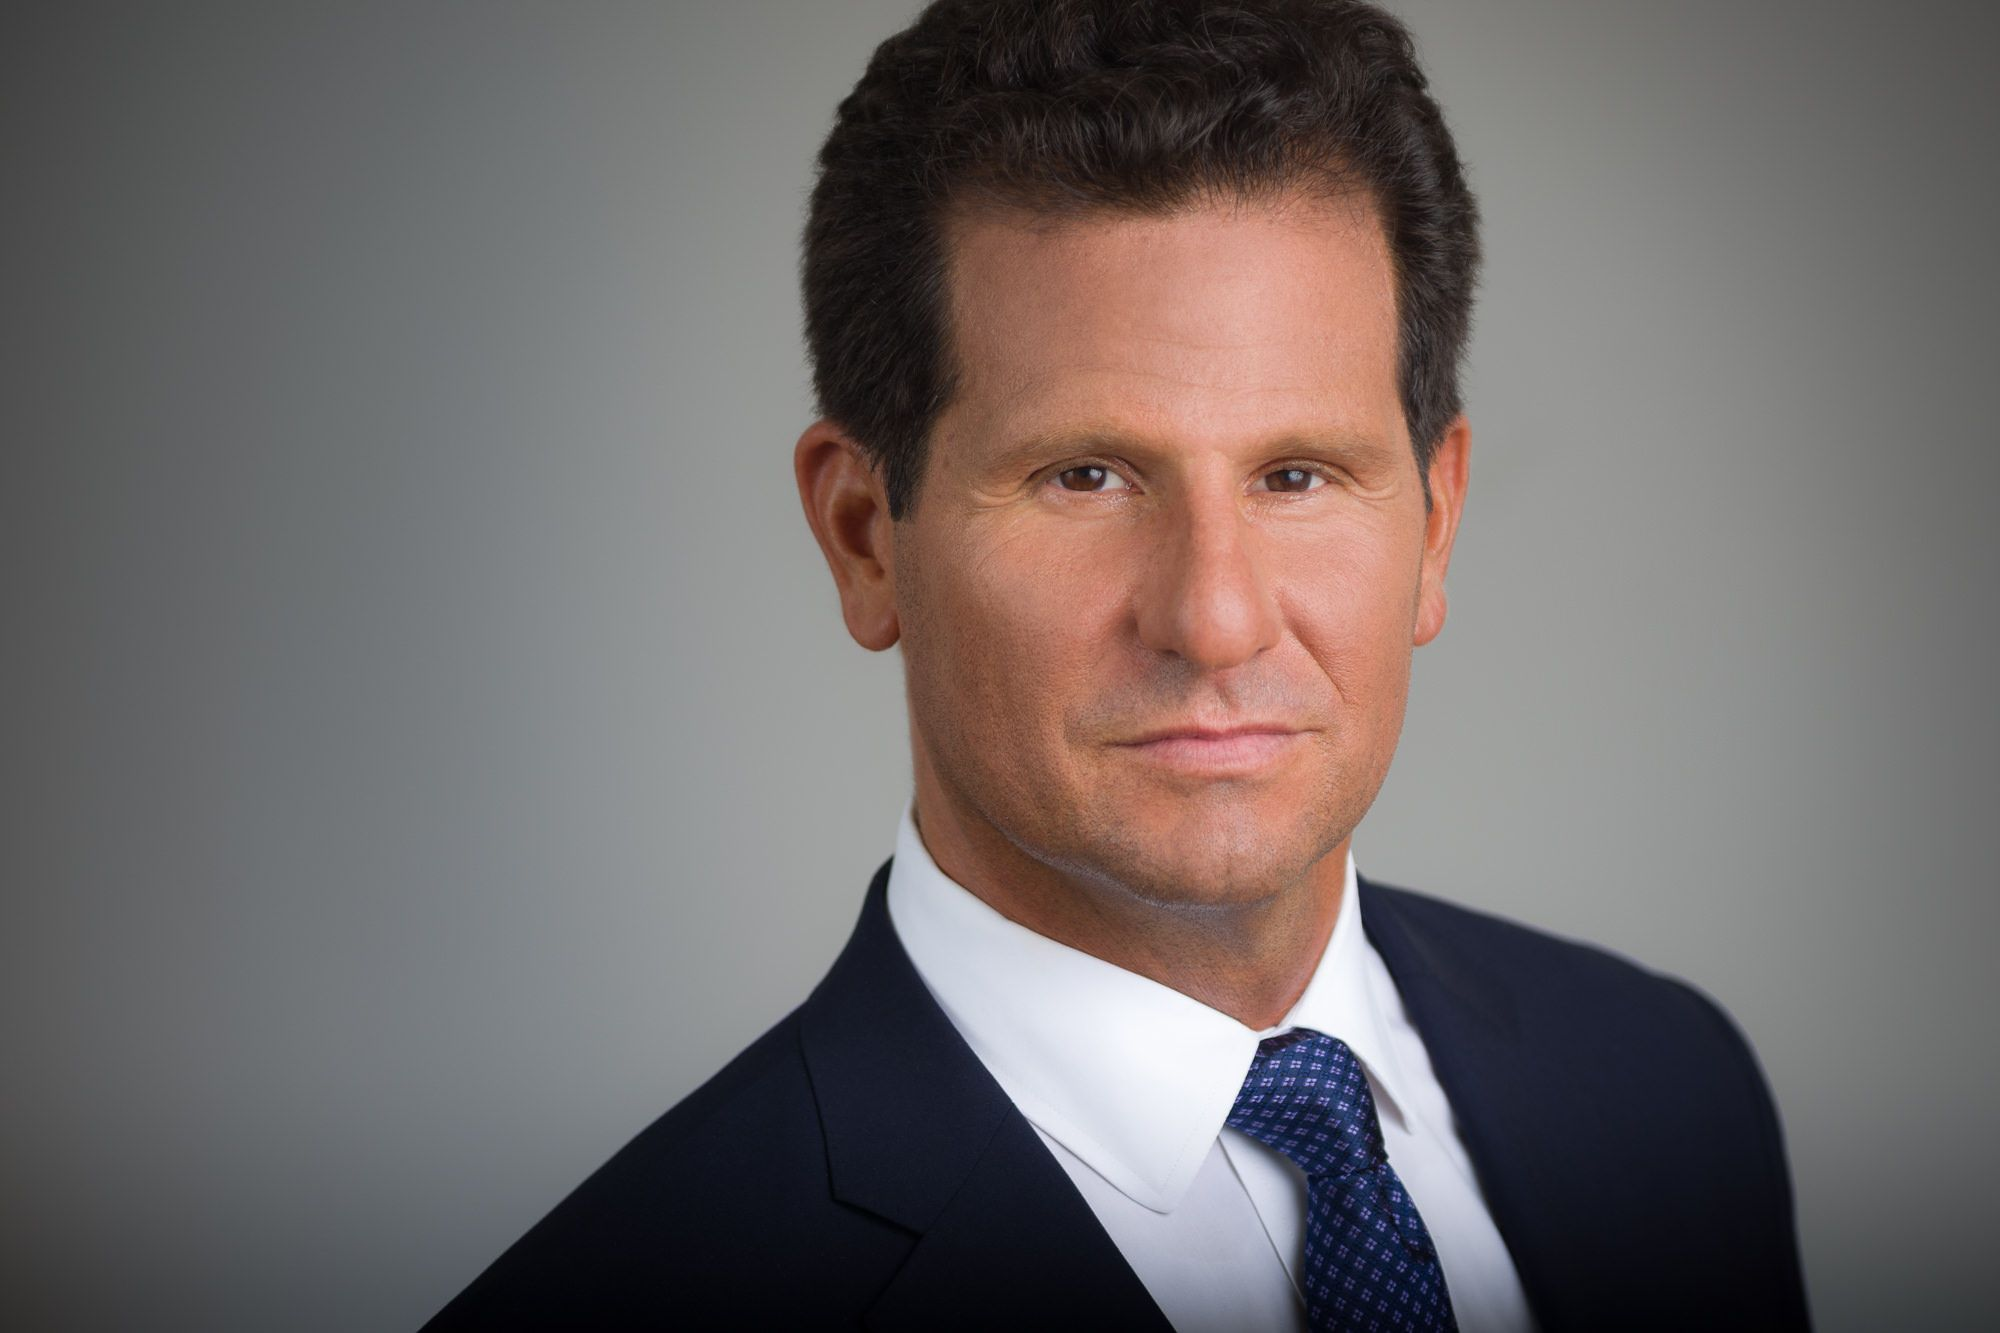 Mr Shegerian Has Won Over 68 Jury Trials Including 28 Seven Figure Verdicts As A Plaintiff S Attorney Mr Shegerian Is Lice Jury Trial Los Angeles Attorneys